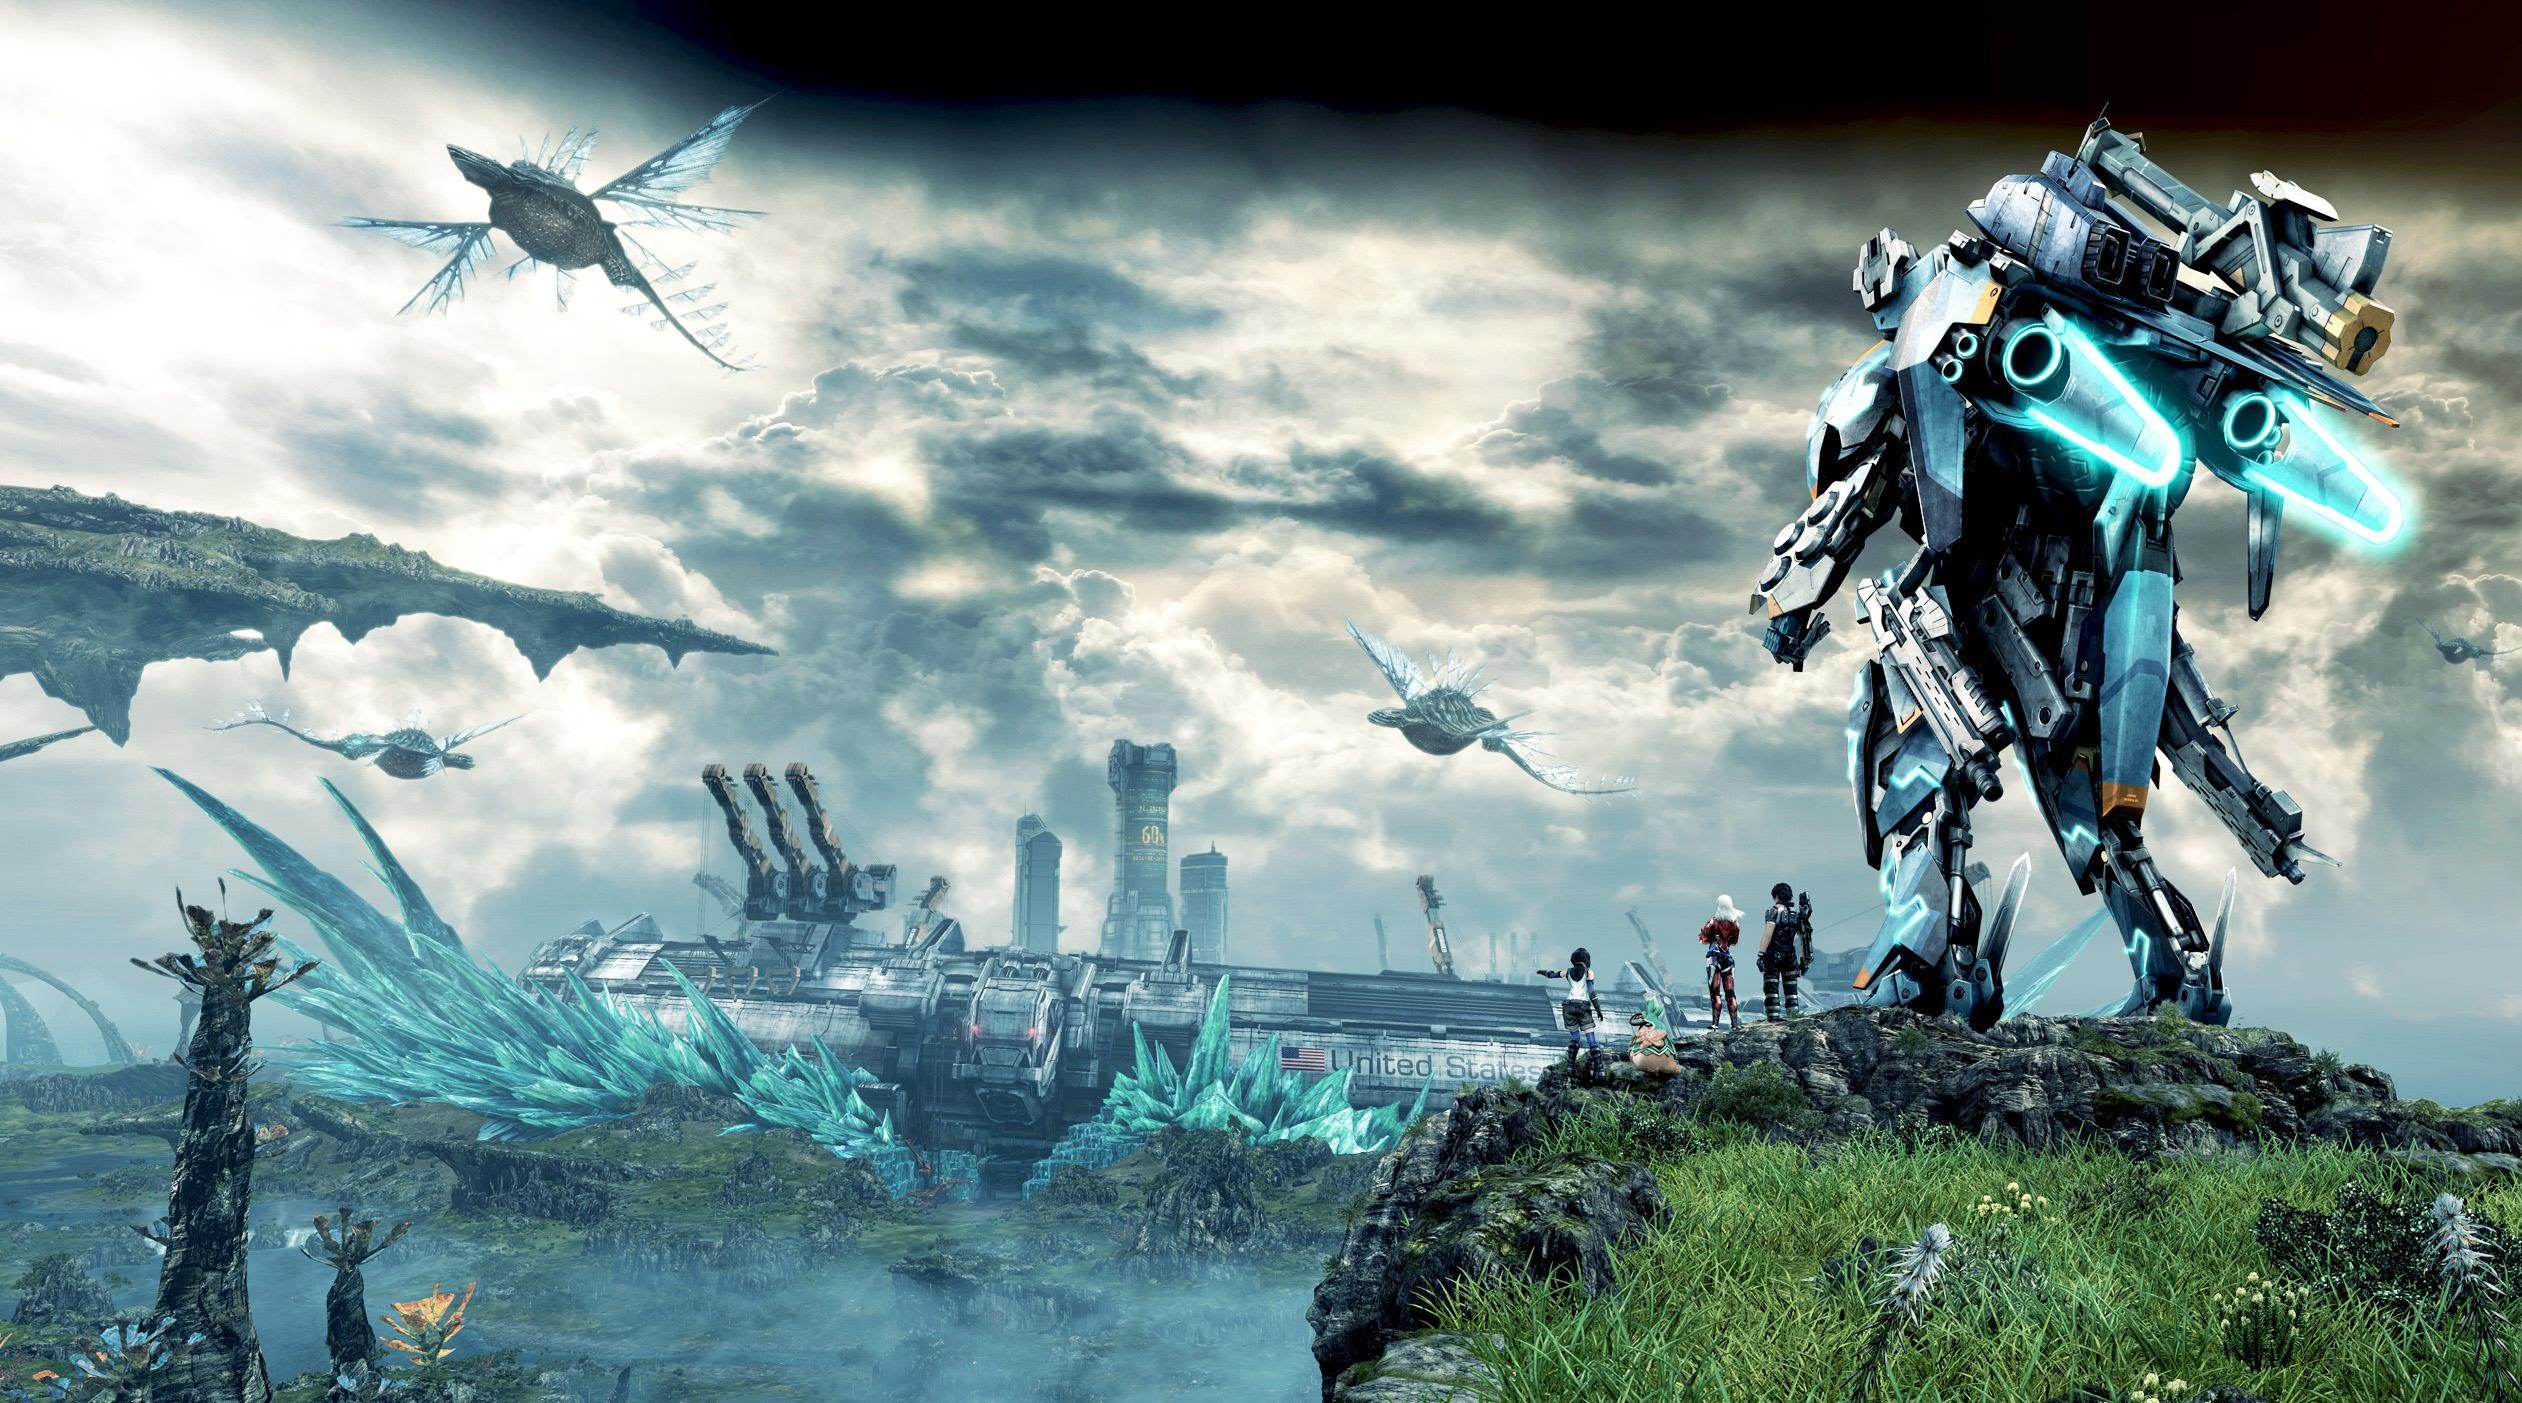 Xenoblade Chronicles X HD Wallpapers and Background Images   stmednet 2522x1403